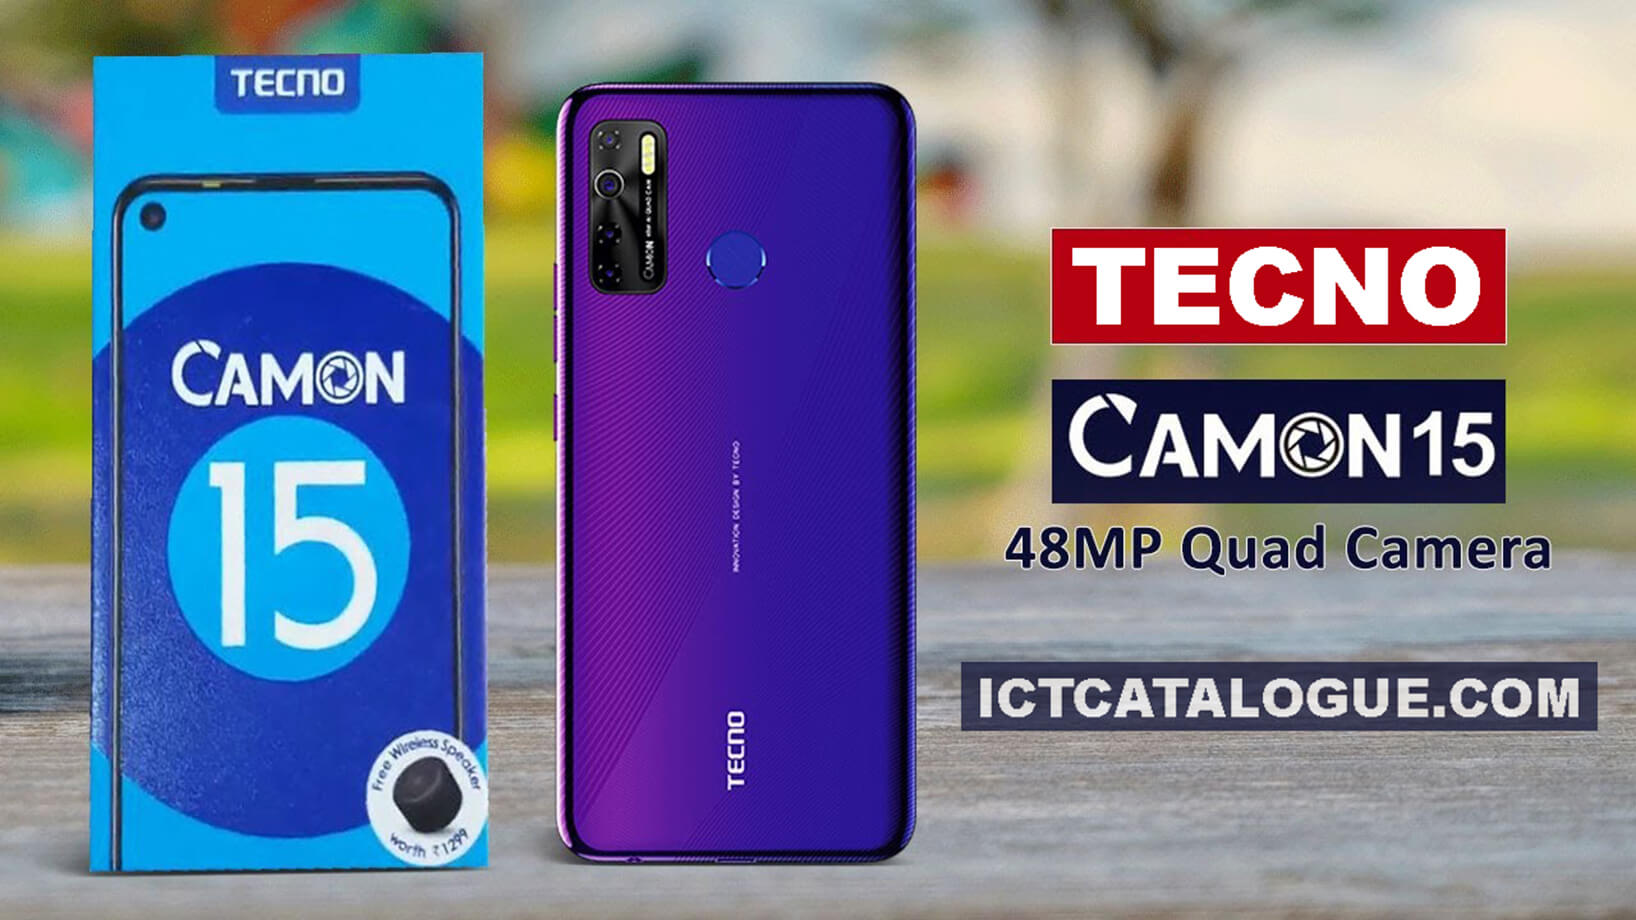 TECNO Camon 15 Specs And Price In Ghana